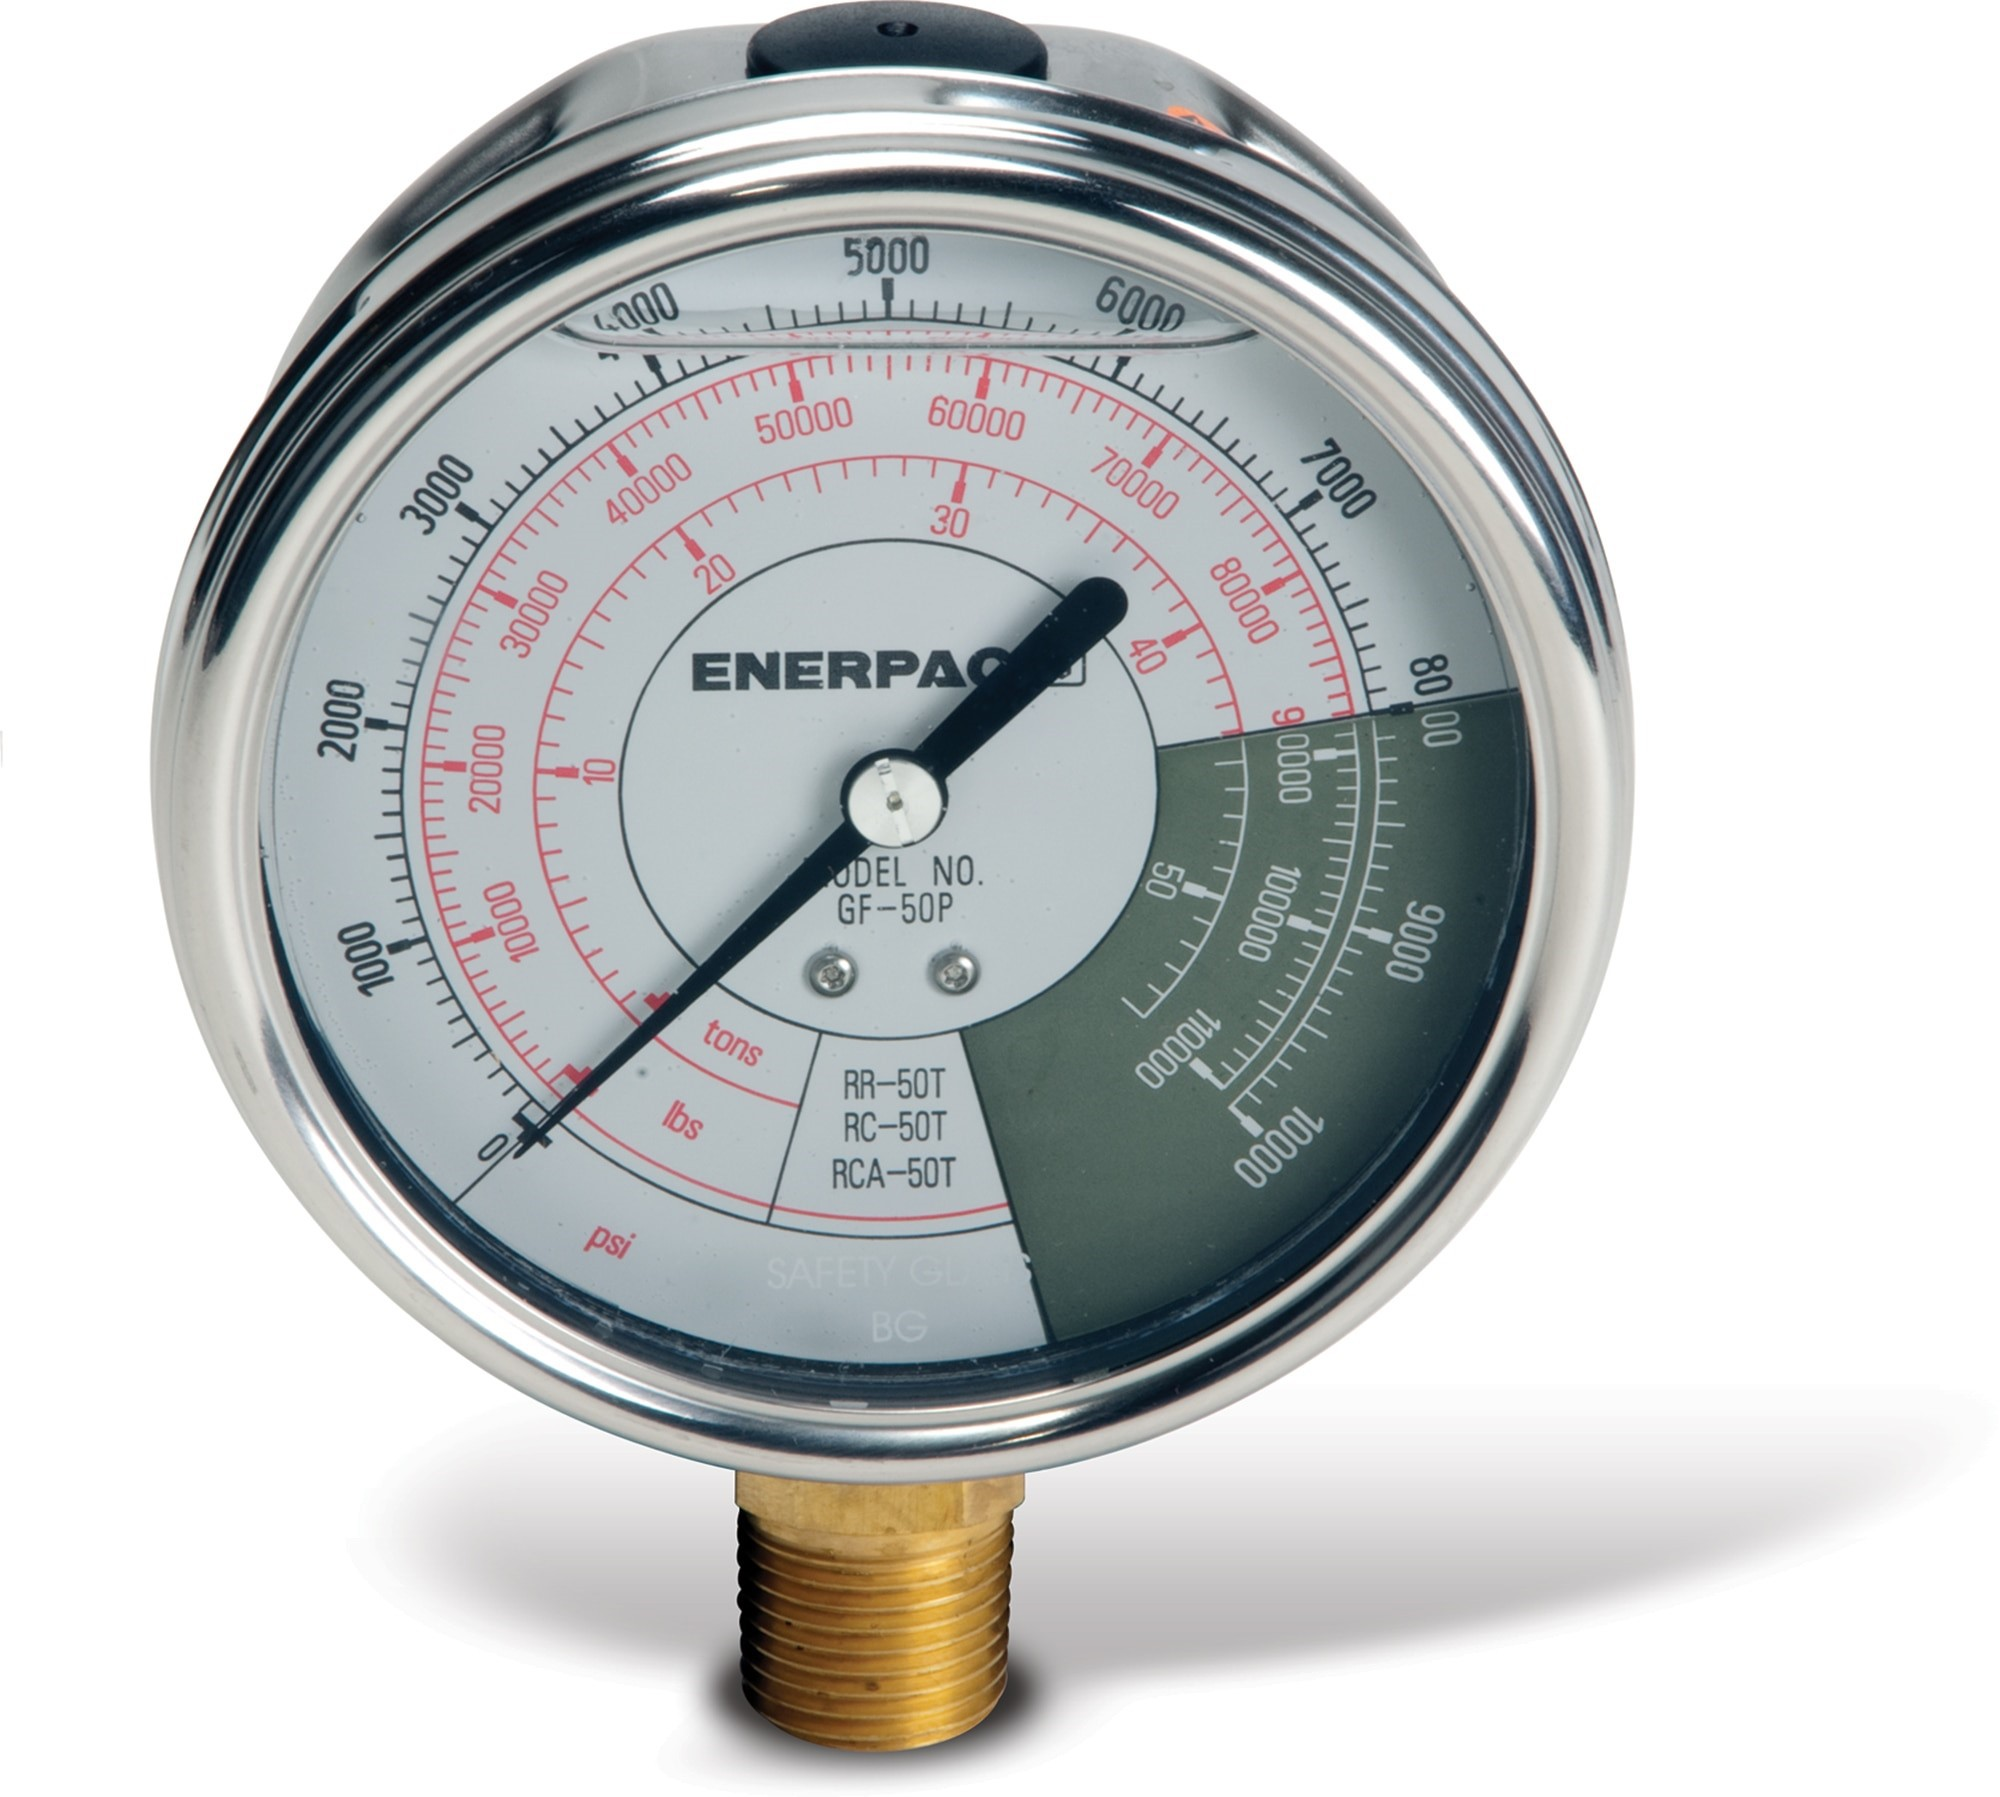 Enerpac GF50B Hydraulic Force and Pressure Gauge